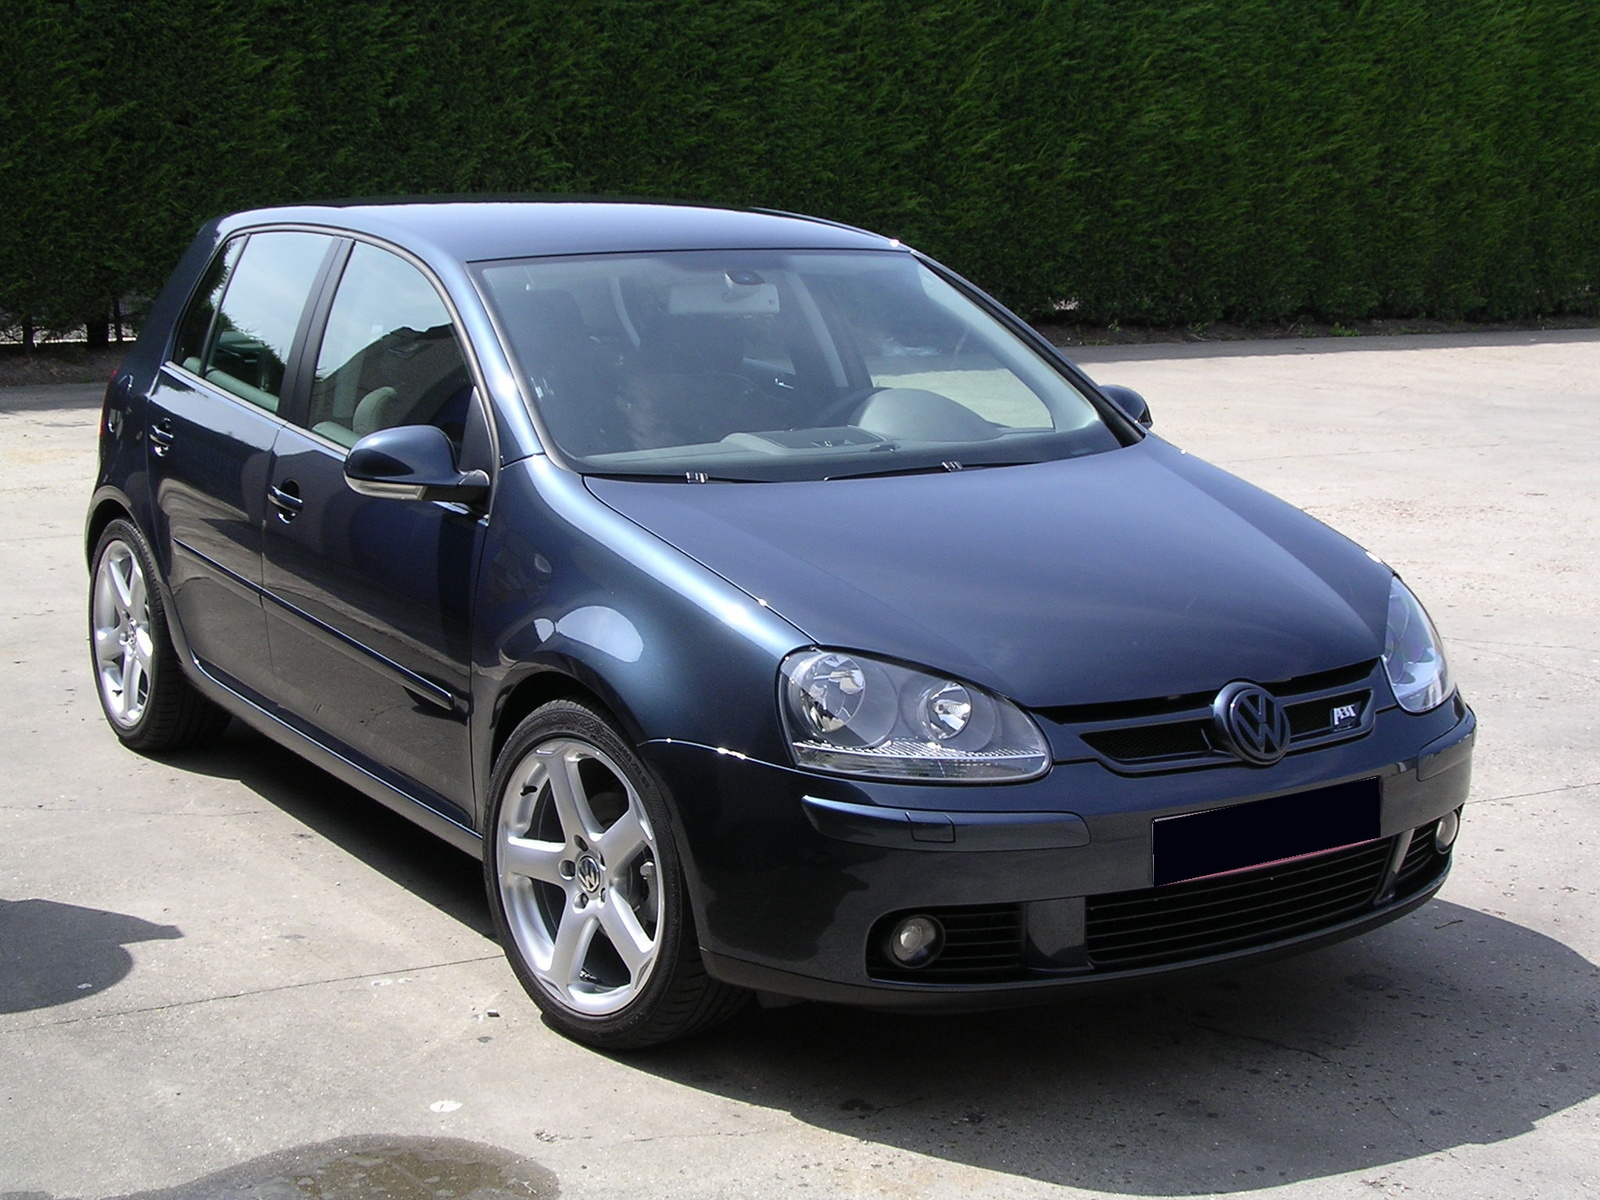 Volkswagen Golf 1.9 2010 photo - 5